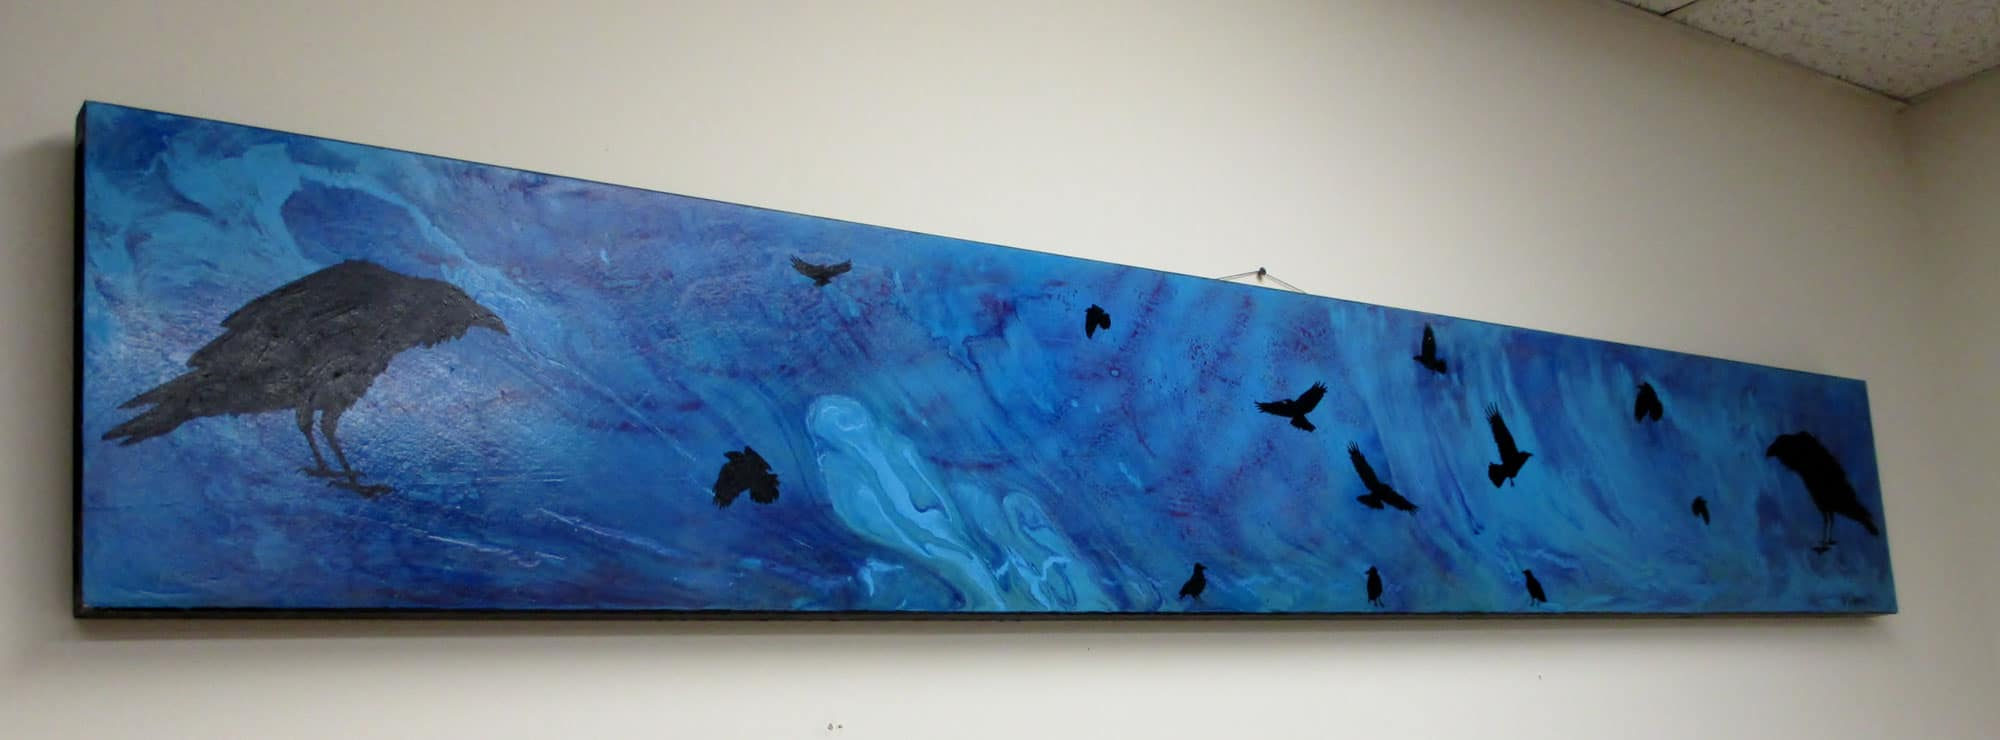 Community Options would like to thank David Culbertson for generously donating paintings to the Santa Fe day program.